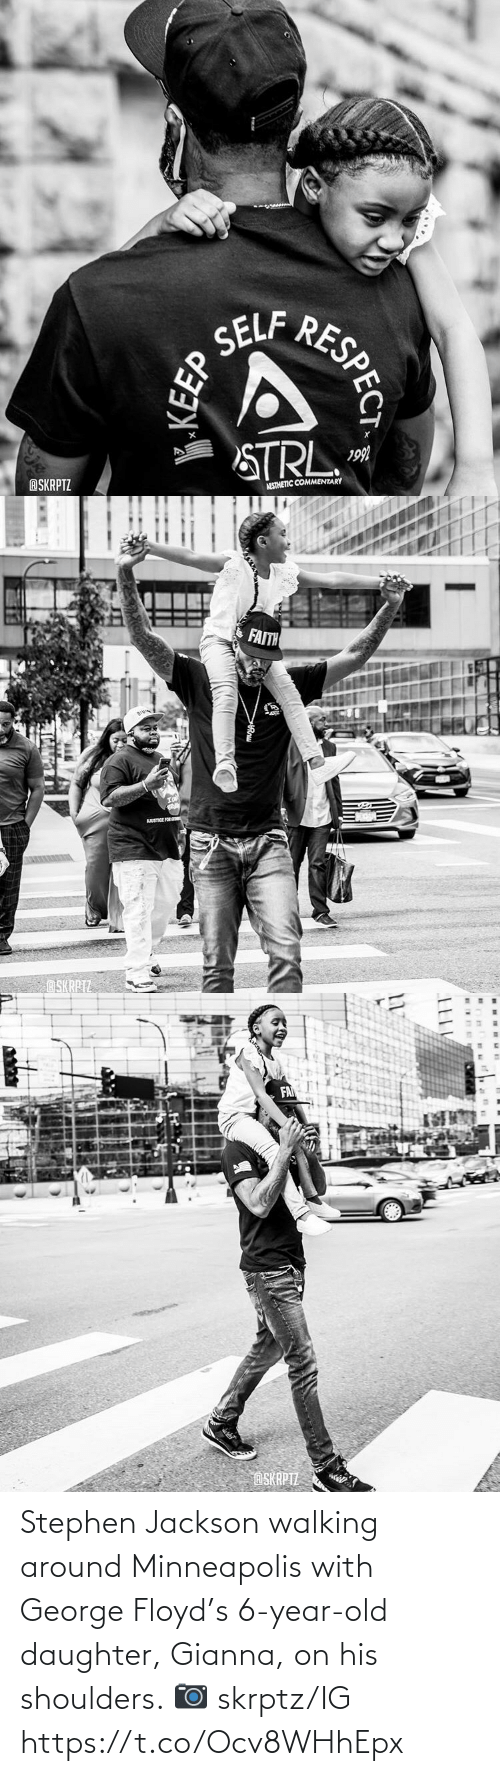 Memes, Stephen, and Minneapolis: Stephen Jackson walking around Minneapolis with George Floyd's 6-year-old daughter, Gianna, on his shoulders.   📷 skrptz/IG https://t.co/Ocv8WHhEpx